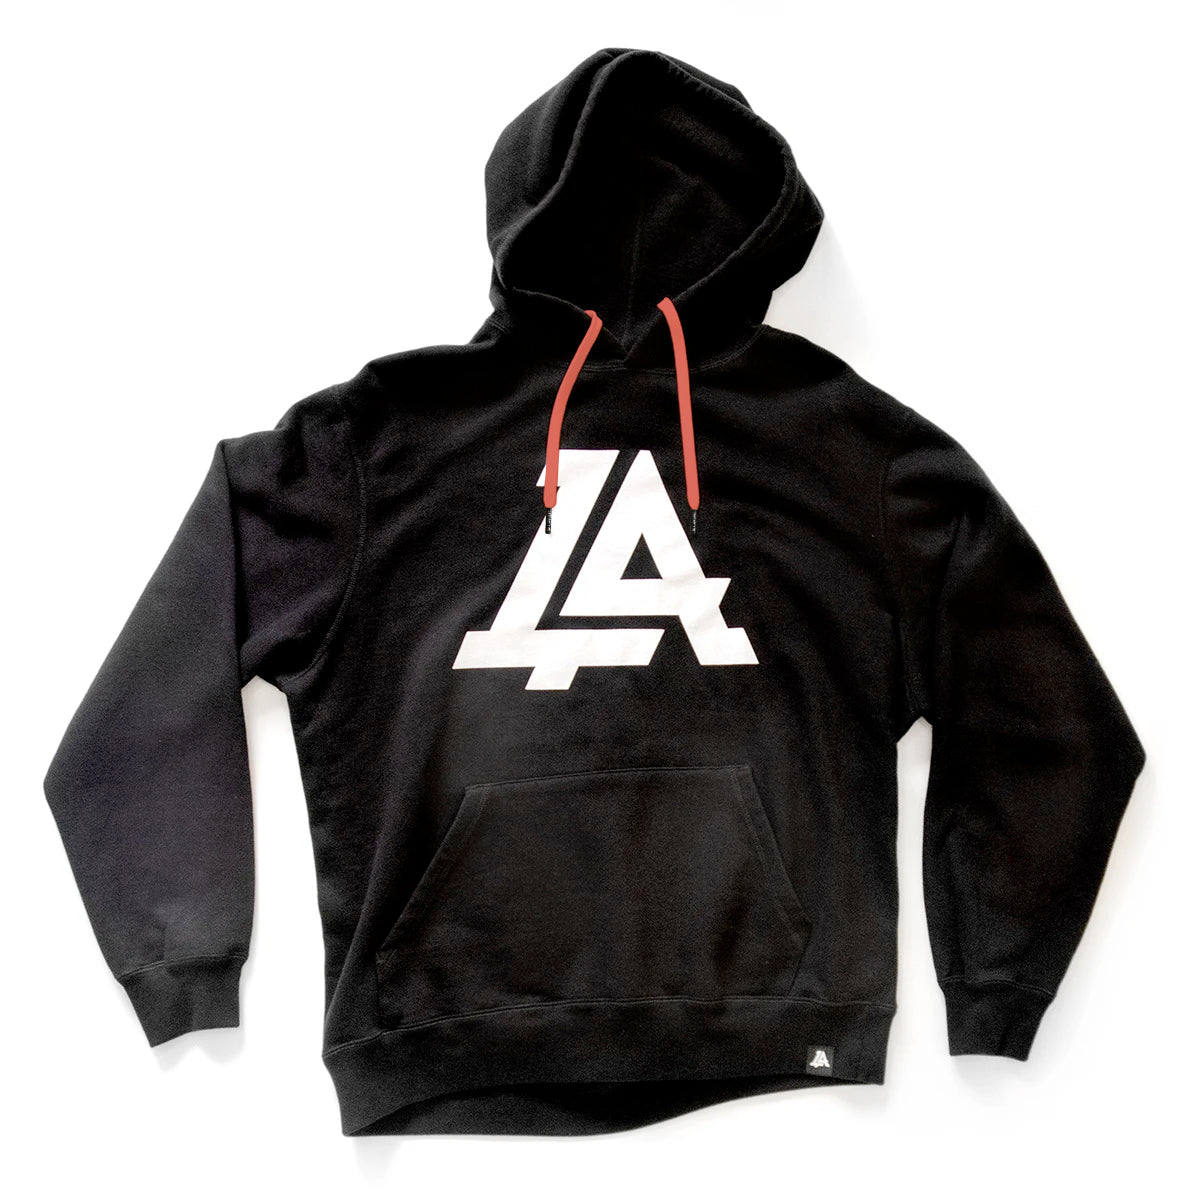 Lost Art Canada - black icon hoodie sweatshirt front view coral strings